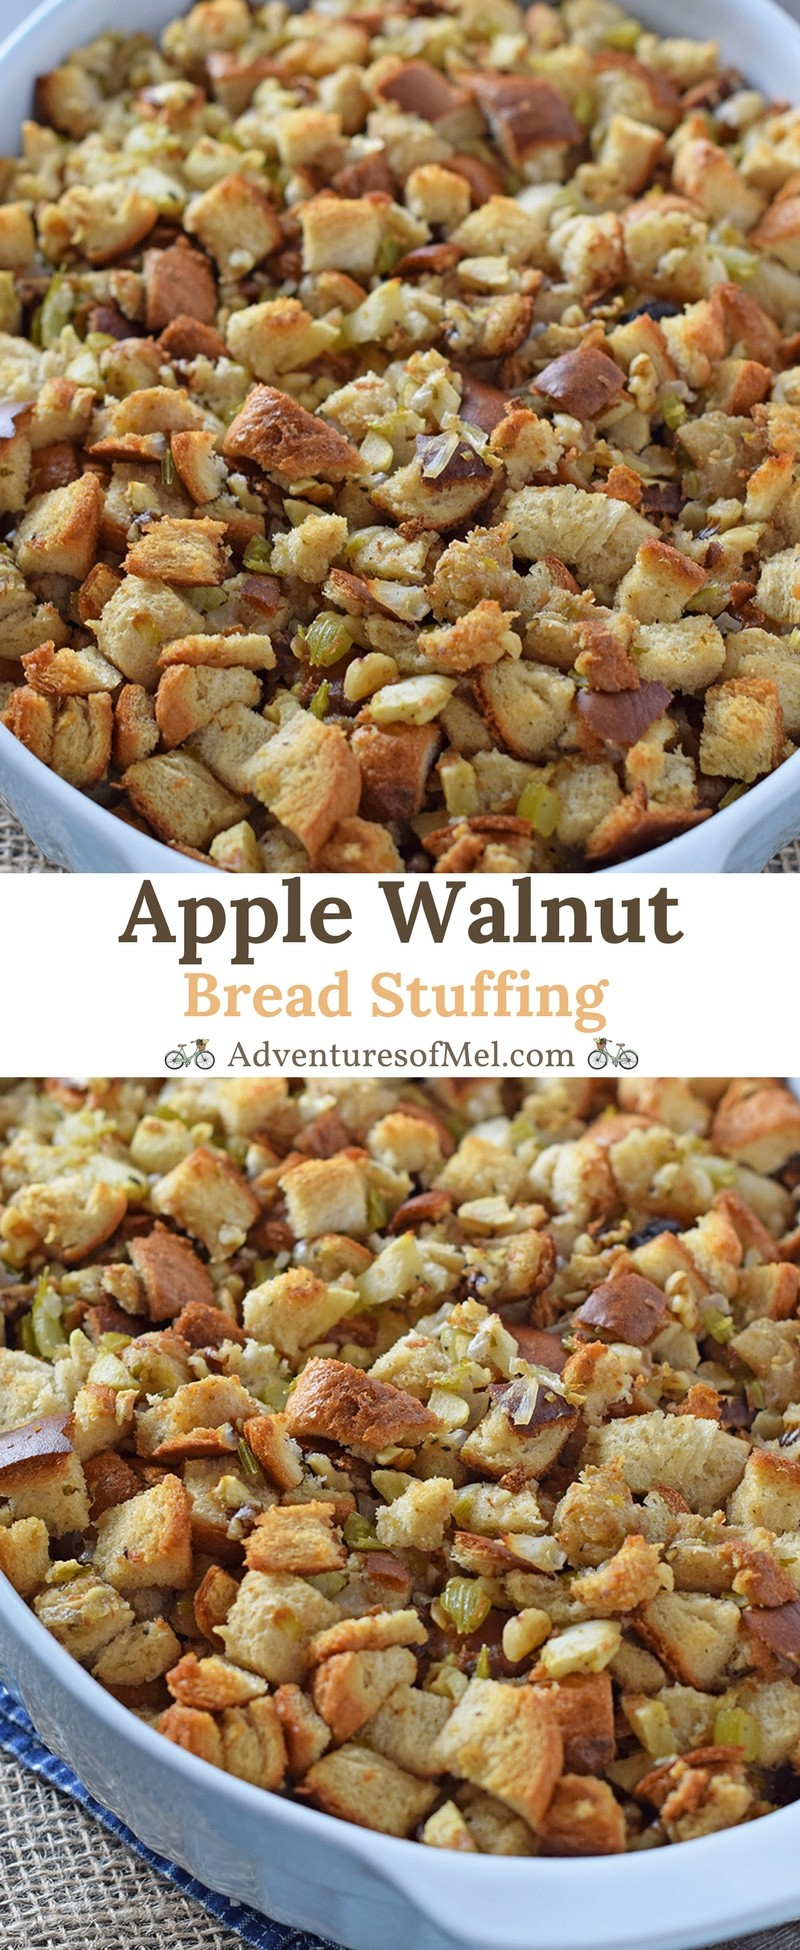 Apple Walnut Bread Stuffing, an easy, traditional, old-fashioned, homemade recipe. Simple ingredients in a delicious Thanksgiving side everyone will love!